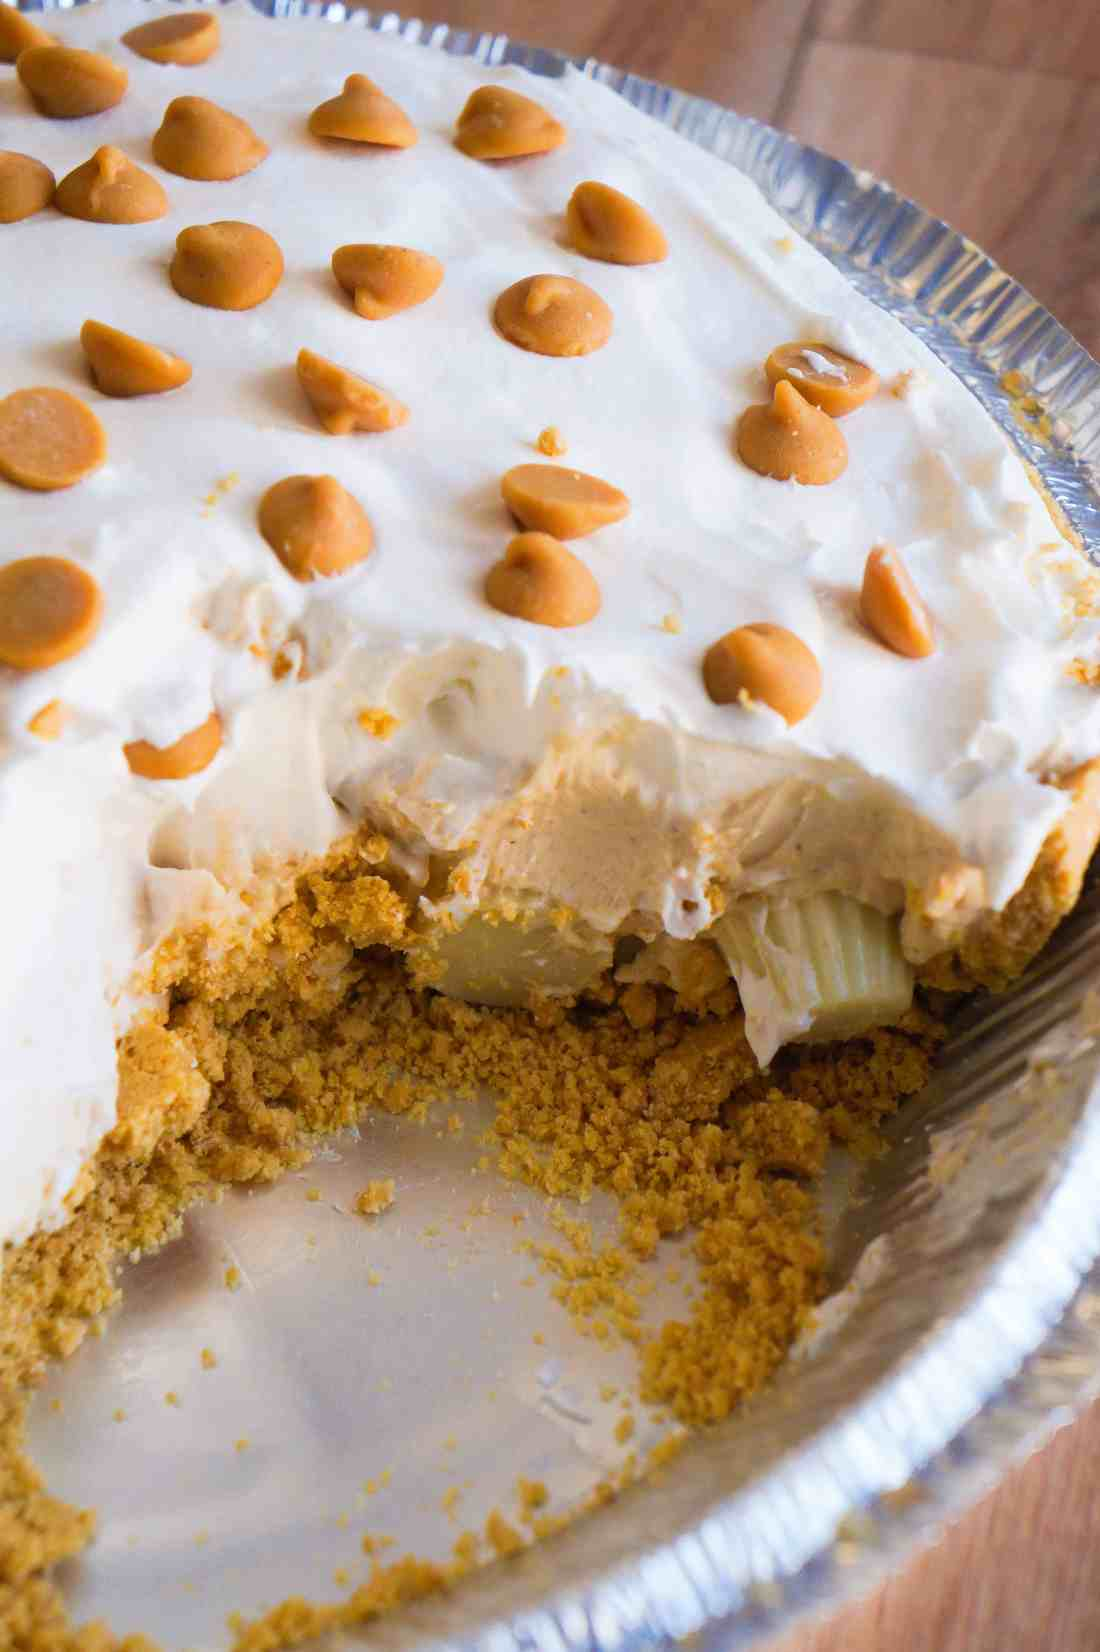 White Chocolate Peanut Butter Pie is an easy no bake dessert recipe. A graham crust is filled with white chocolate pudding and mini Reese's white chocolate peanut butter cups.